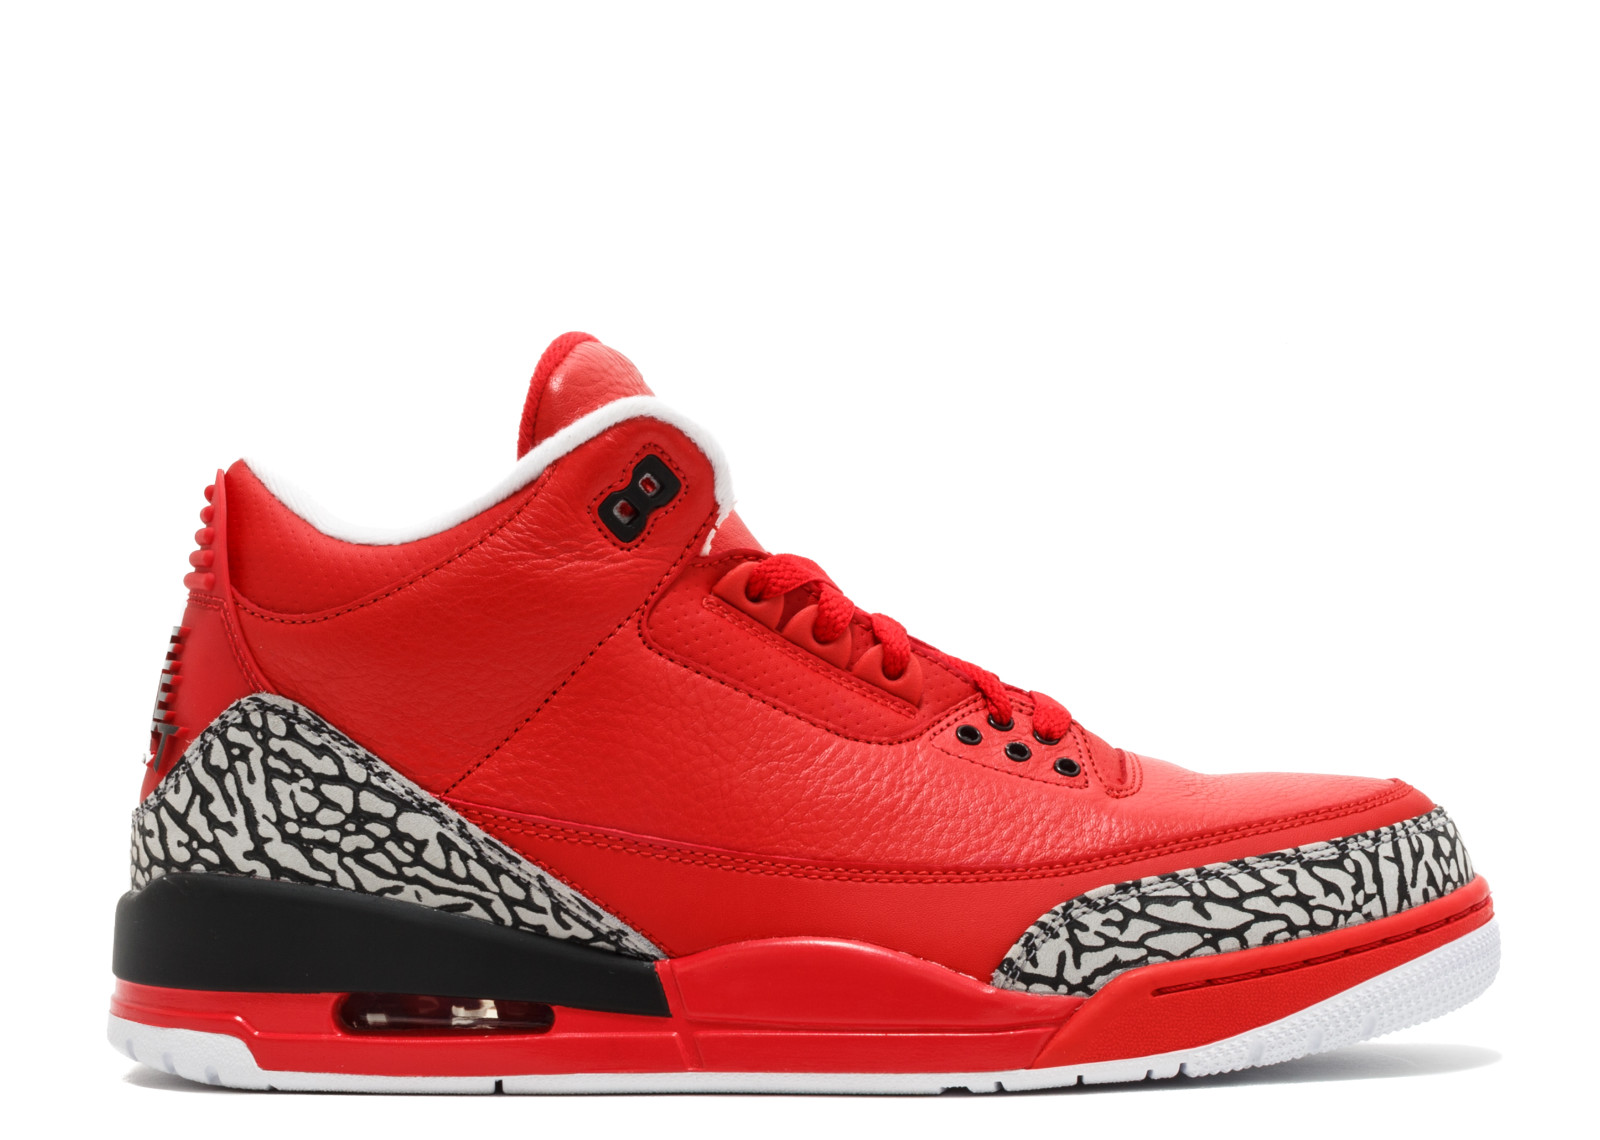 796fd41030d Air Jordan 3 Retro